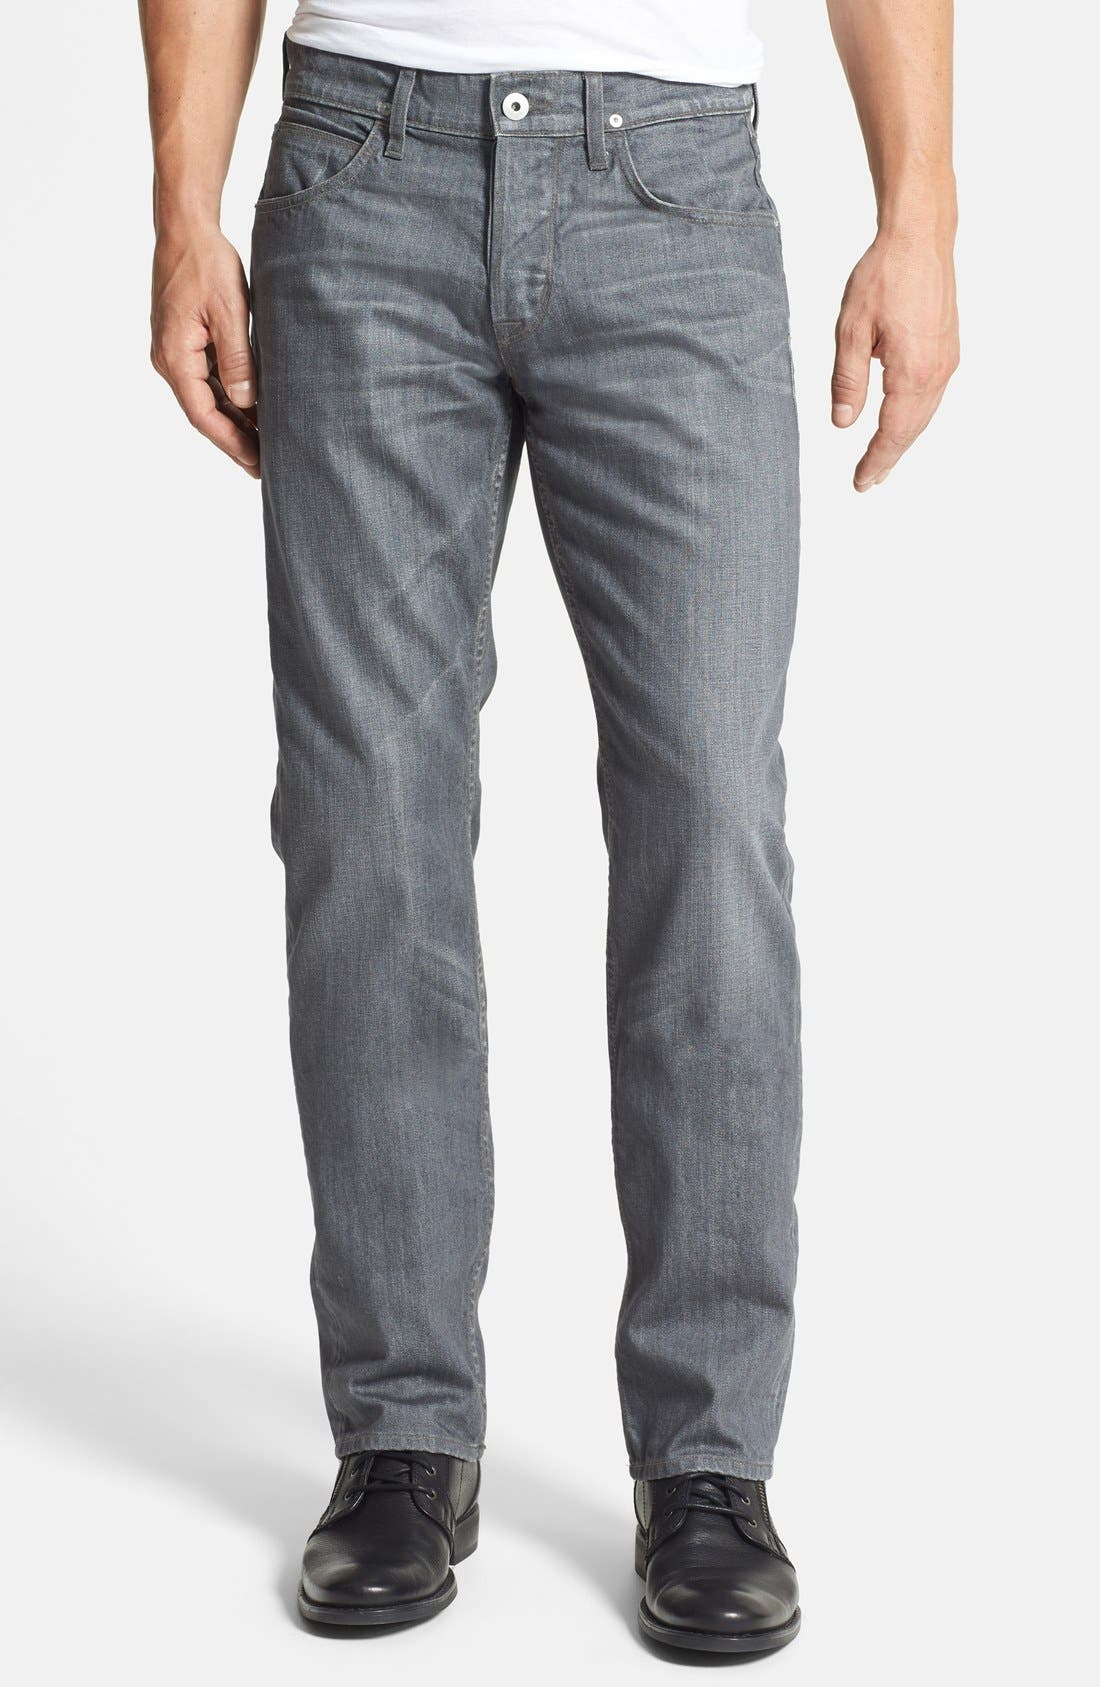 Alternate Image 1 Selected - Hudson Jeans 'Byron' Straight Leg Jeans (Grey Rider)